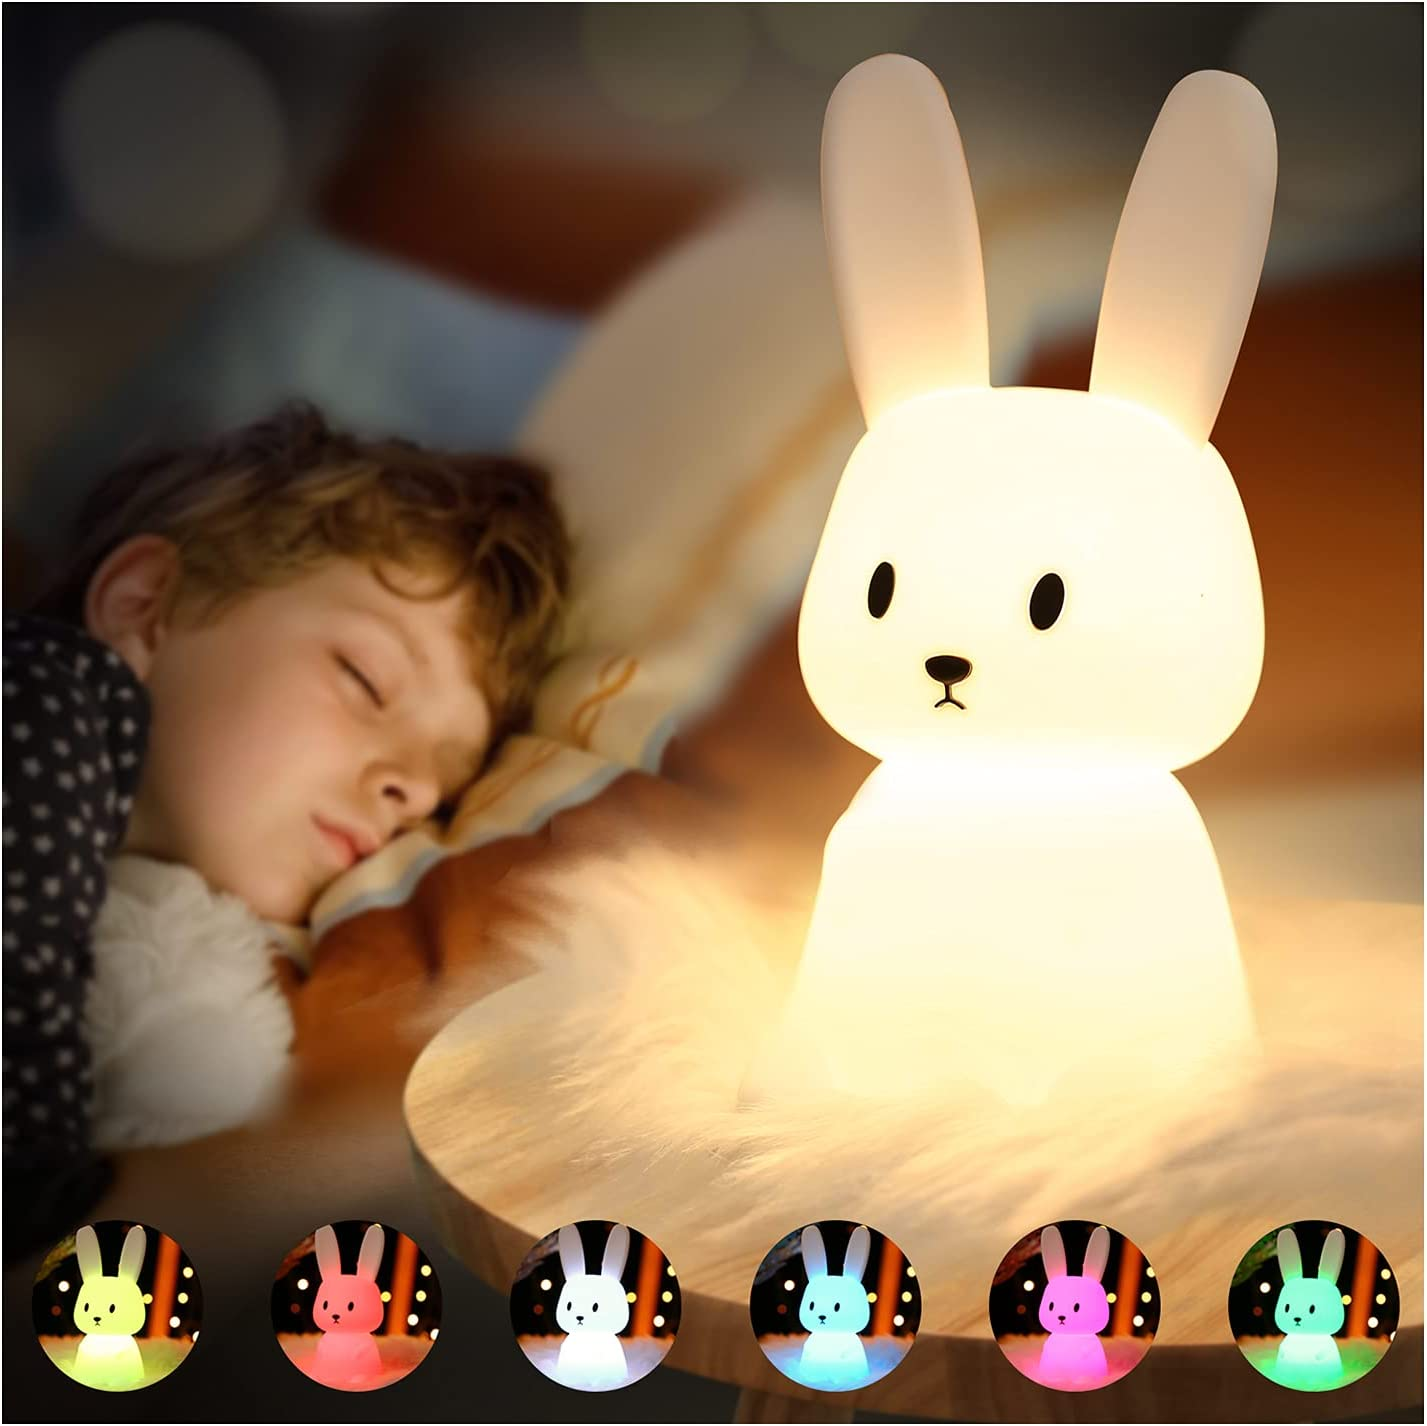 SOLIDEE Bunny Cute Night Light for Children Color Changing Tap Control Portable Squishy Silicone Bedside Lamp Nightlight Kids Kawaii Room Decor Bedroom Decorations for Baby Teens Girls Boys Toddler